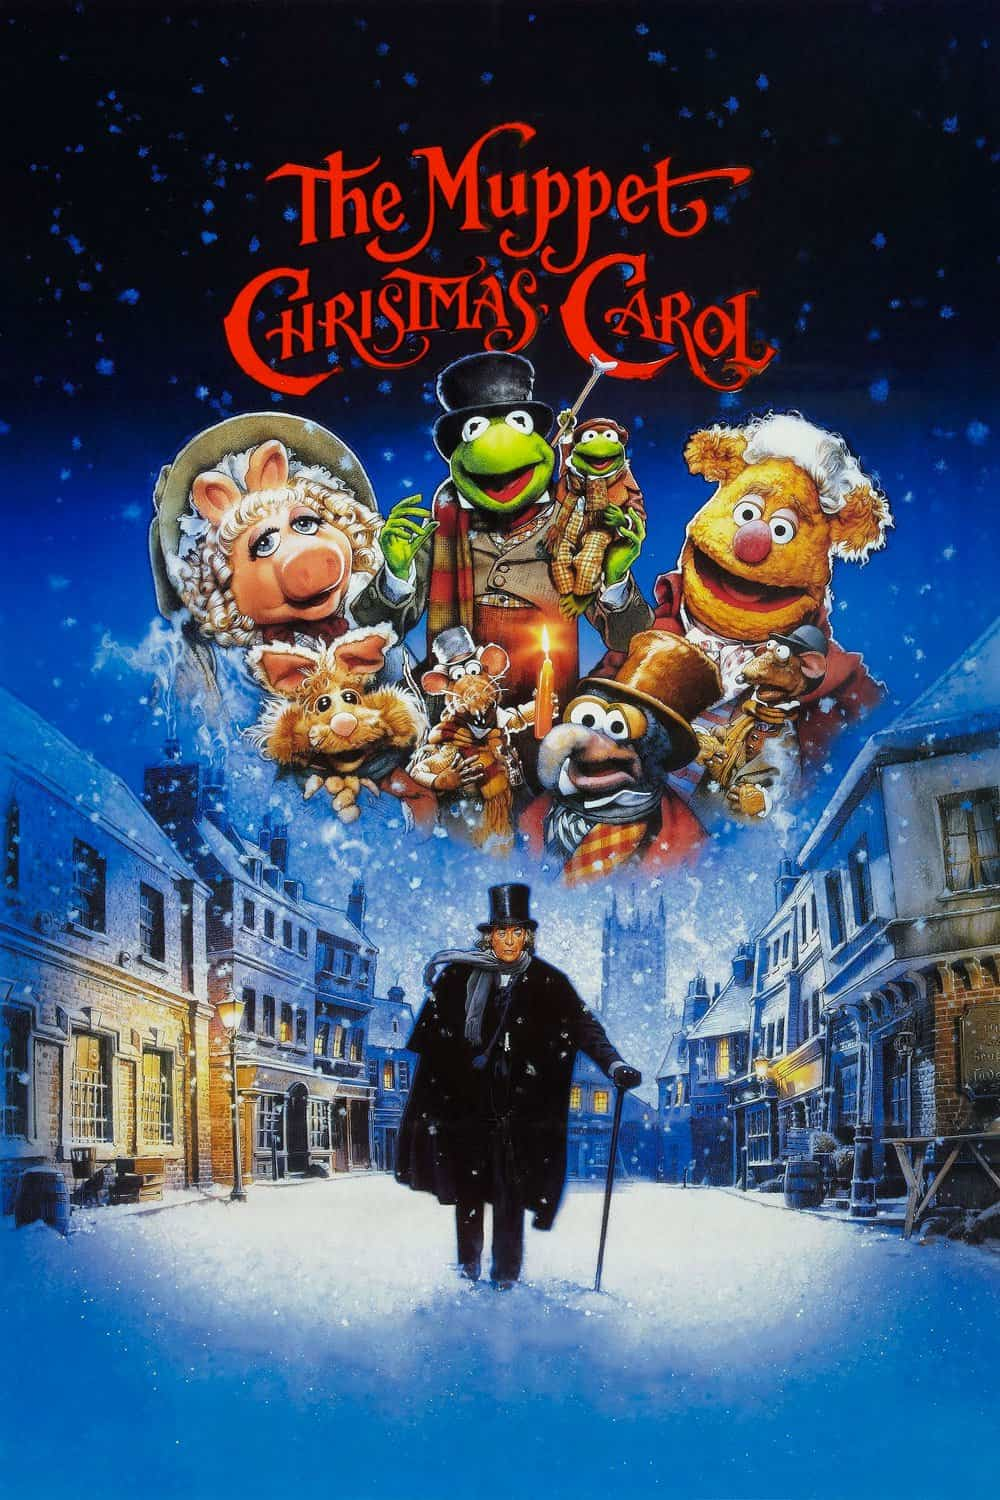 The Muppet Christmas Carol, 1992